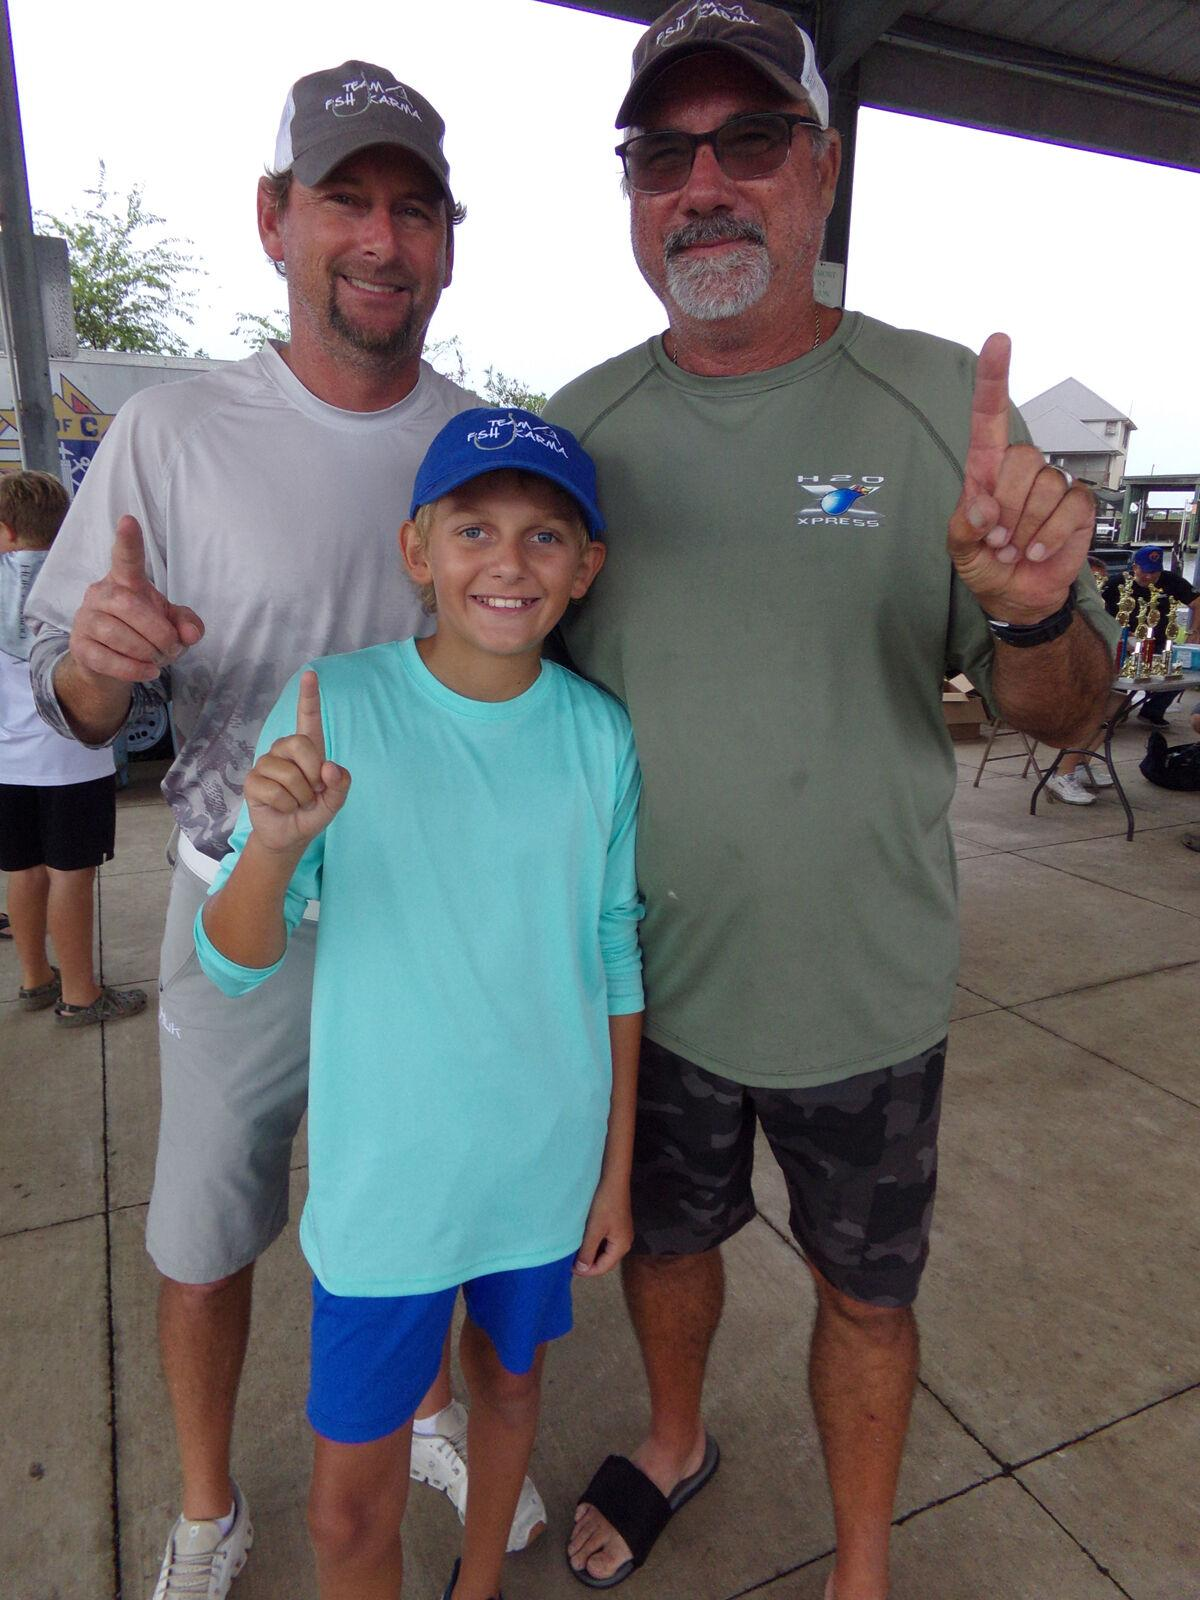 Bitty flounder pays off in big way for Smith, who wins Best All-Around